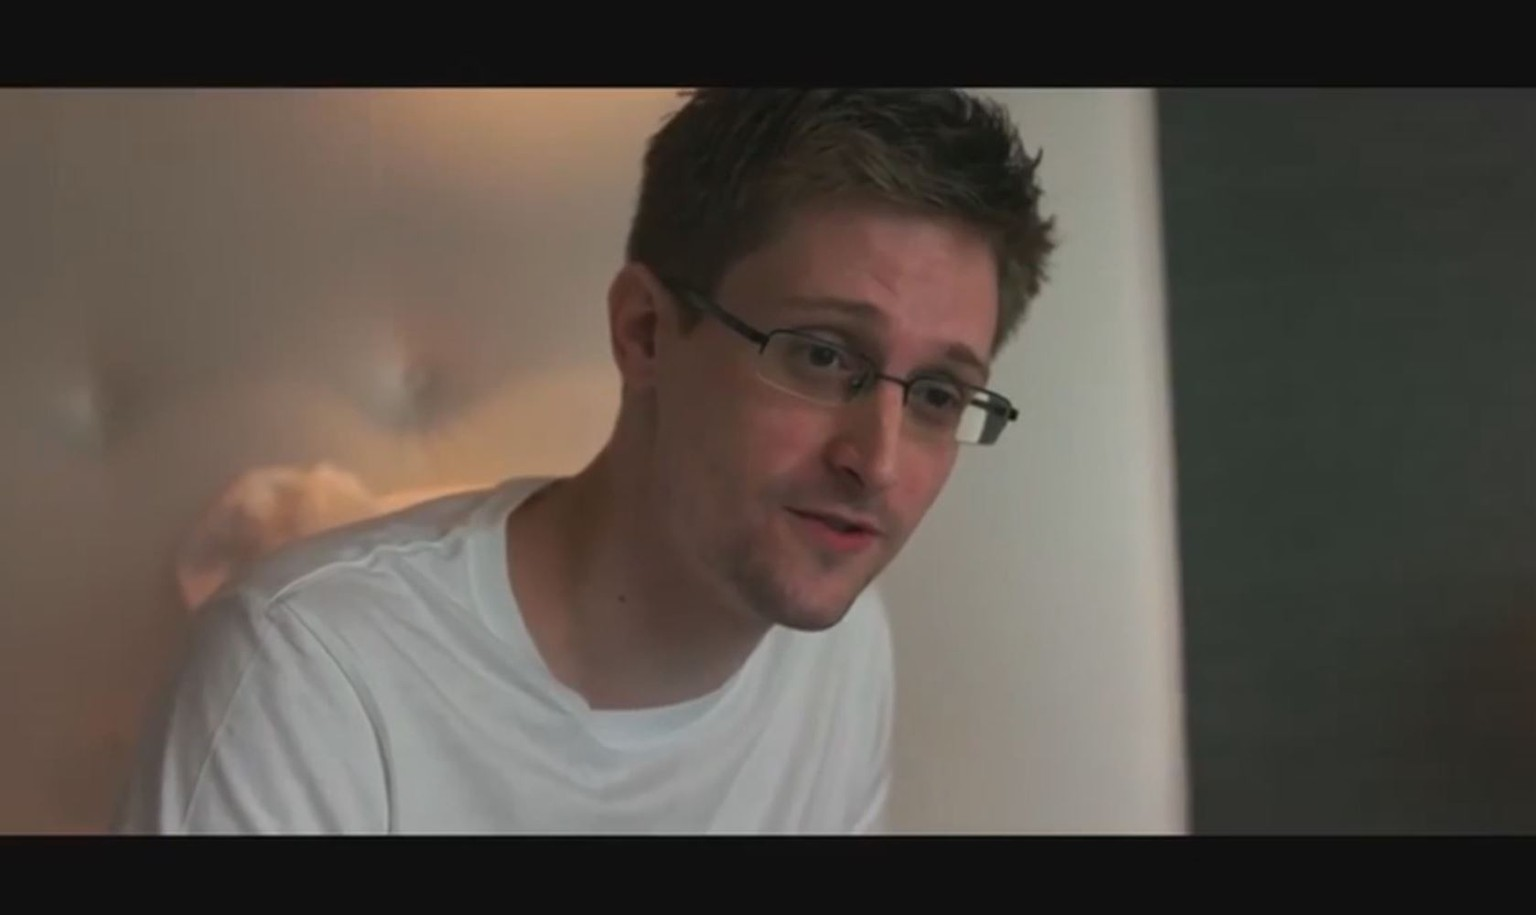 Snowden, Film, citizen four